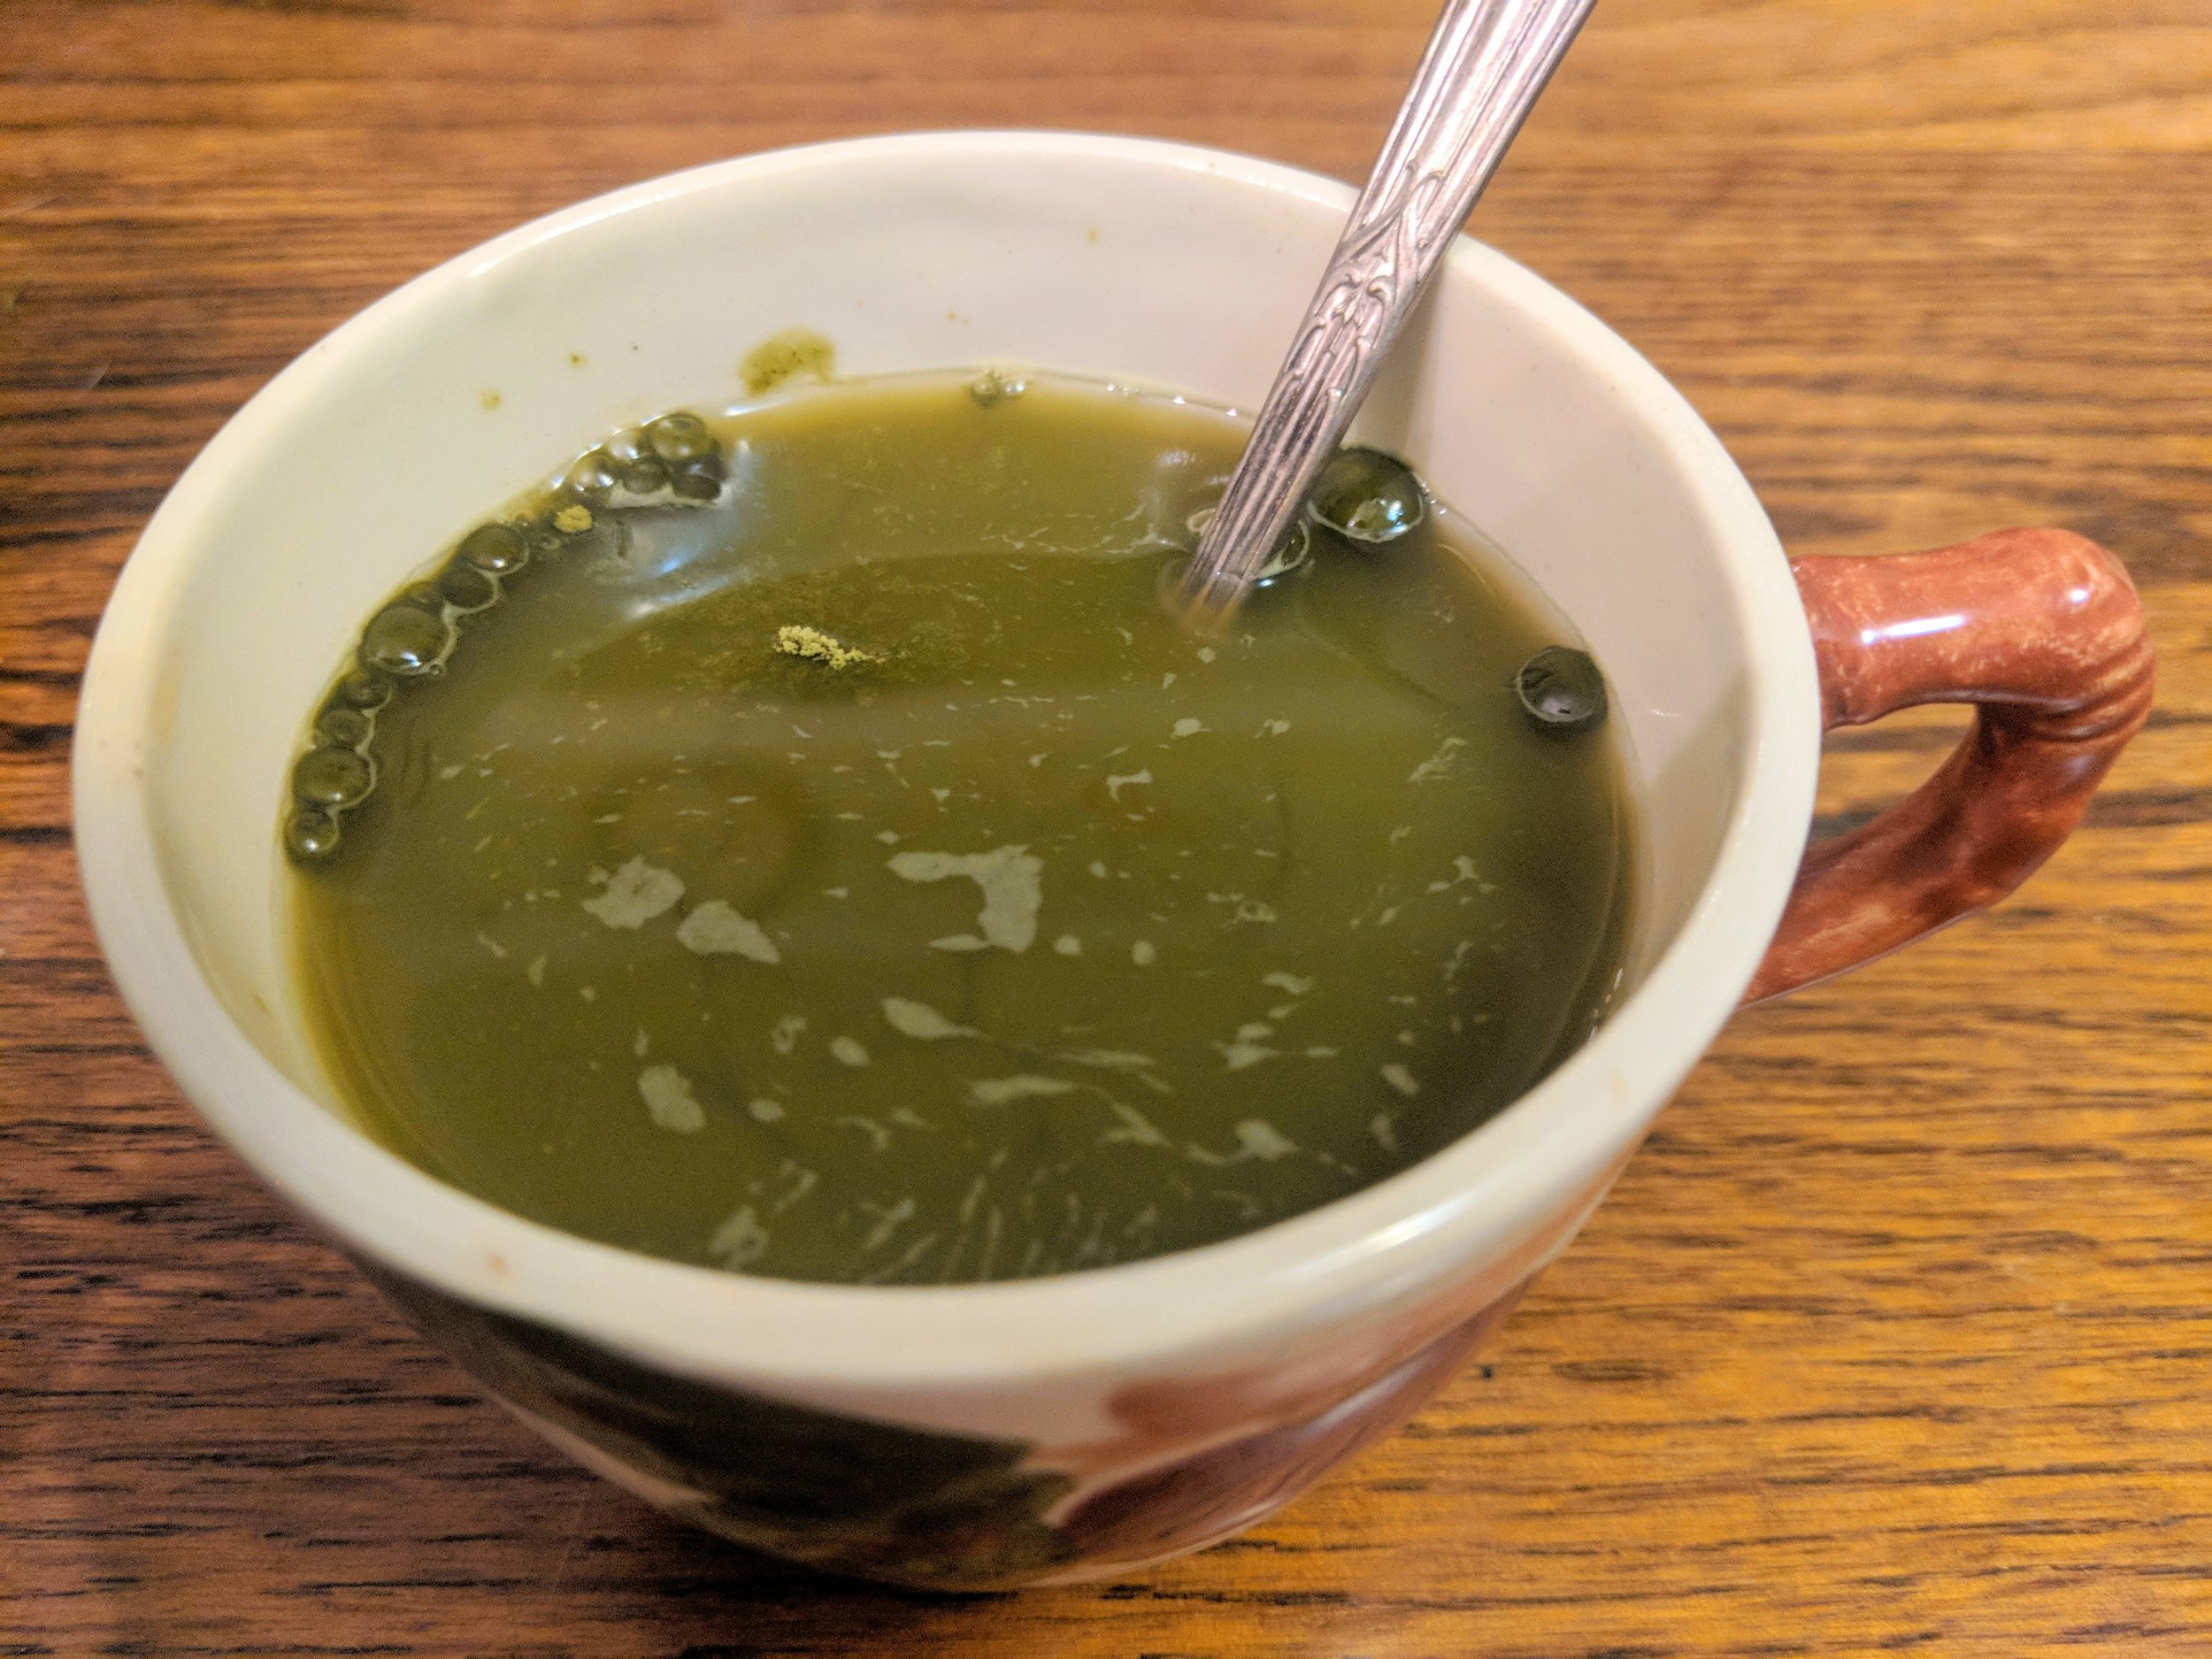 Matcha - Powdered green tea leaves increases absorption and is easy to put into everything.